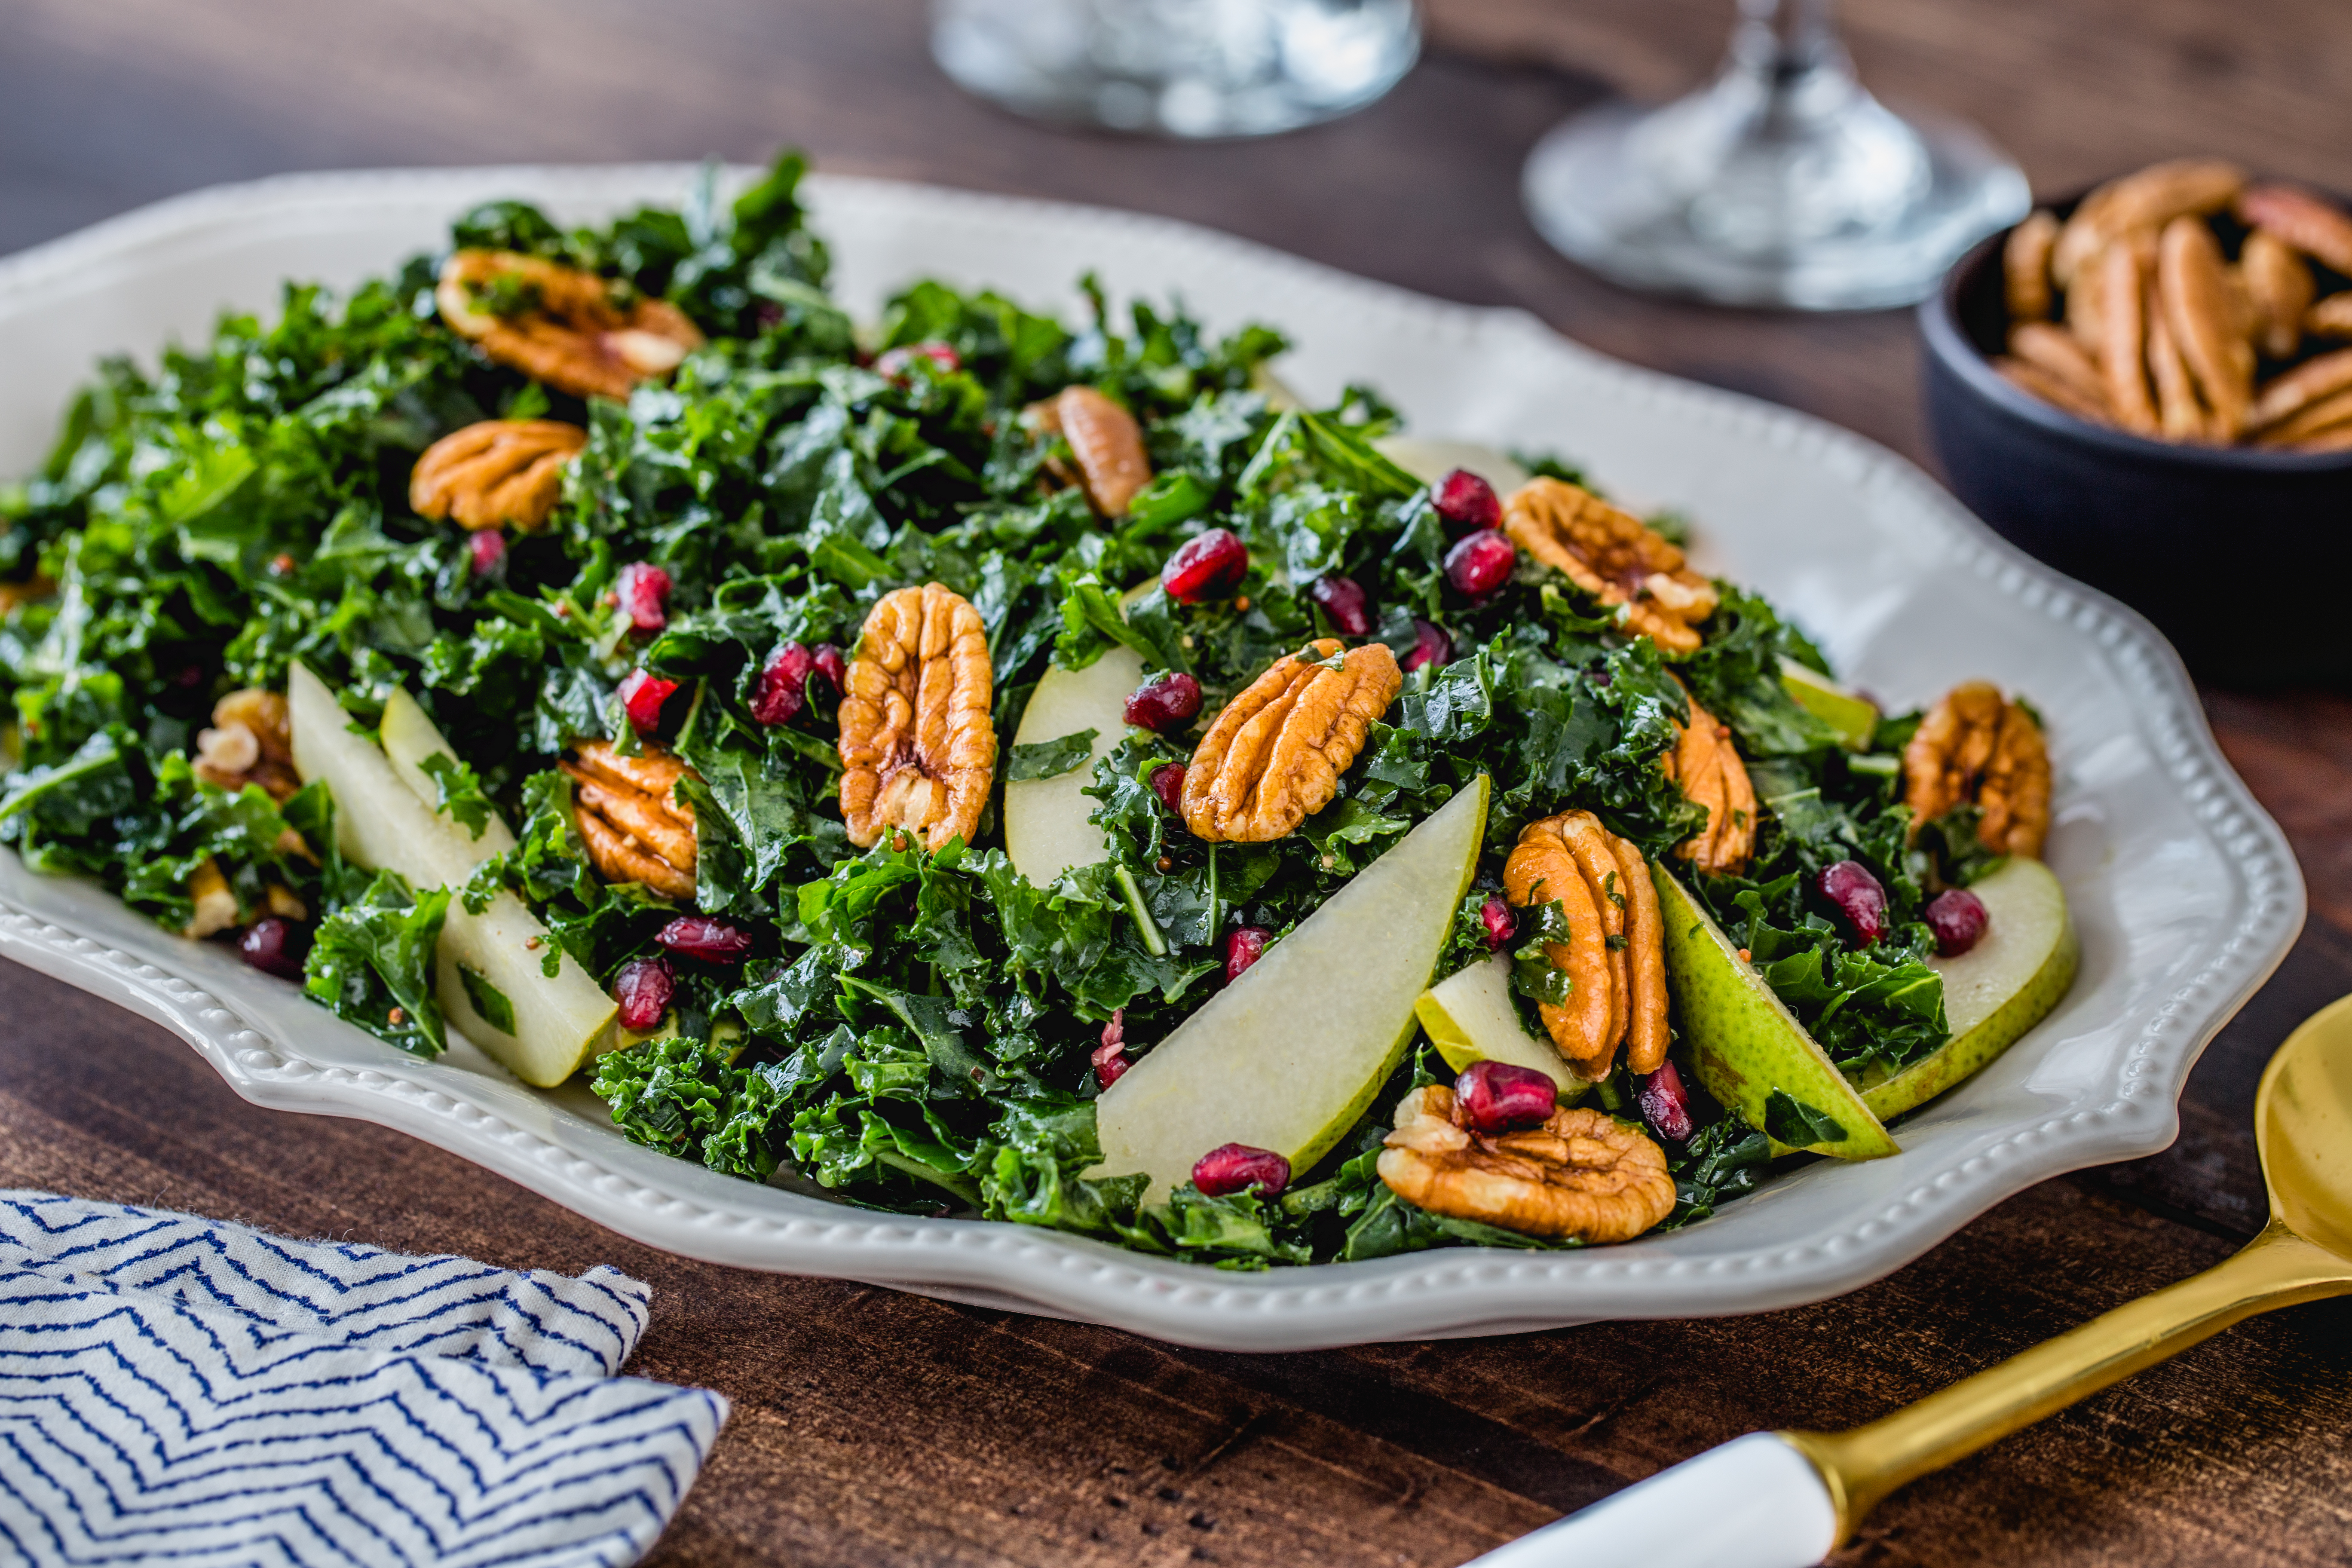 Combine crunchy kale with fresh pecans, pomegranate seeds and pears for a colorful and nutritious salad that's topped with a simple homemade dressing.